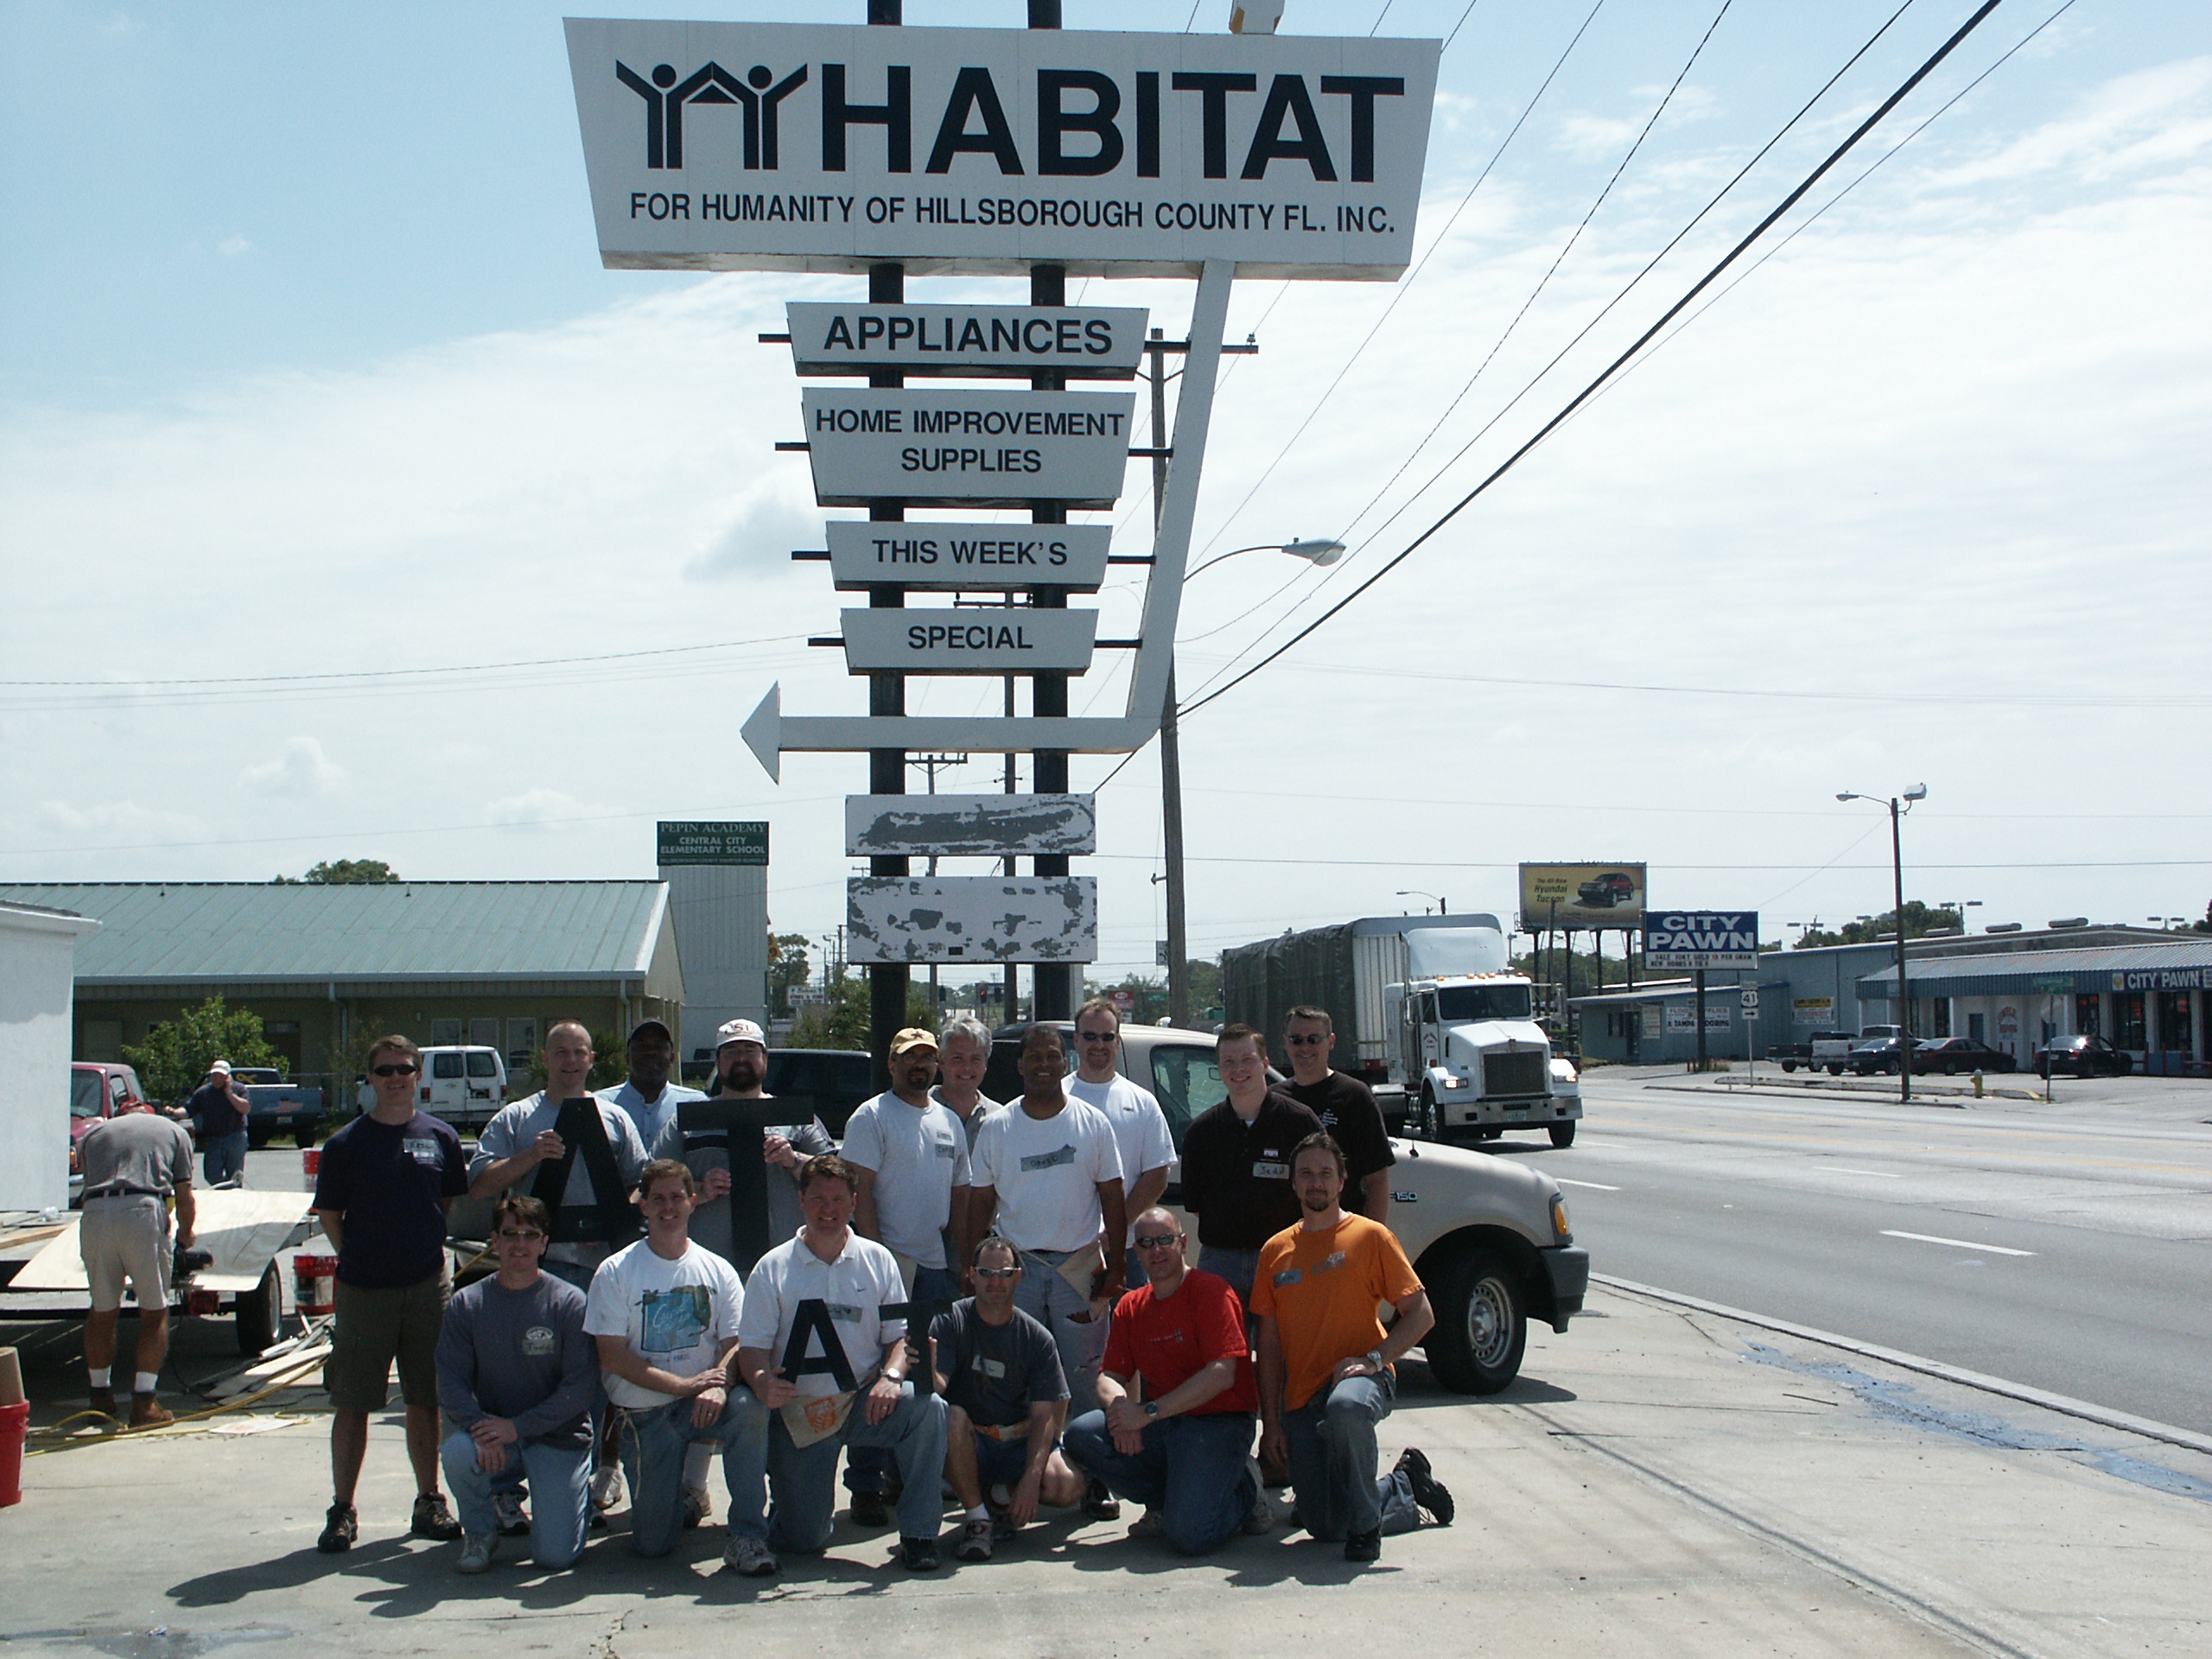 Team photo in front of Habitat for Humanity sign.